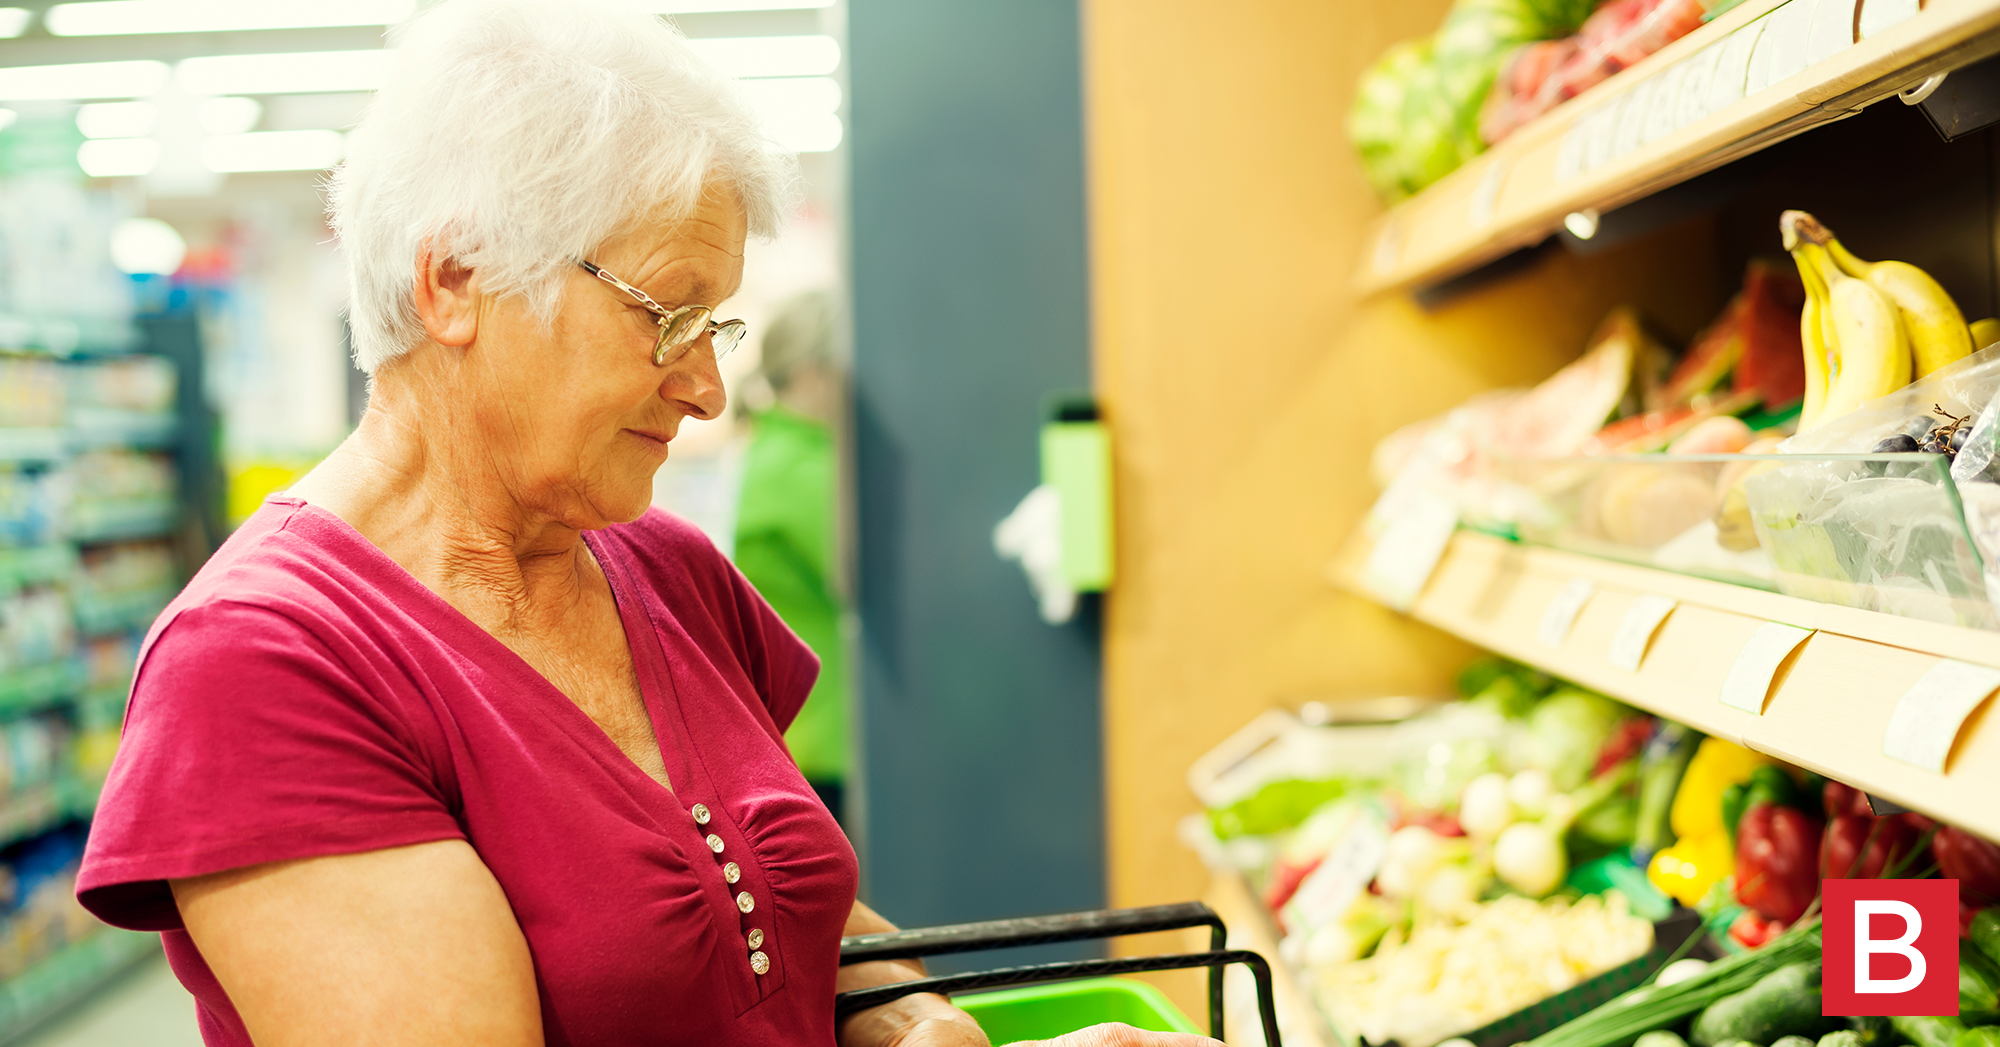 Senior Nutrition: Why Our Diets Should Change as We Age